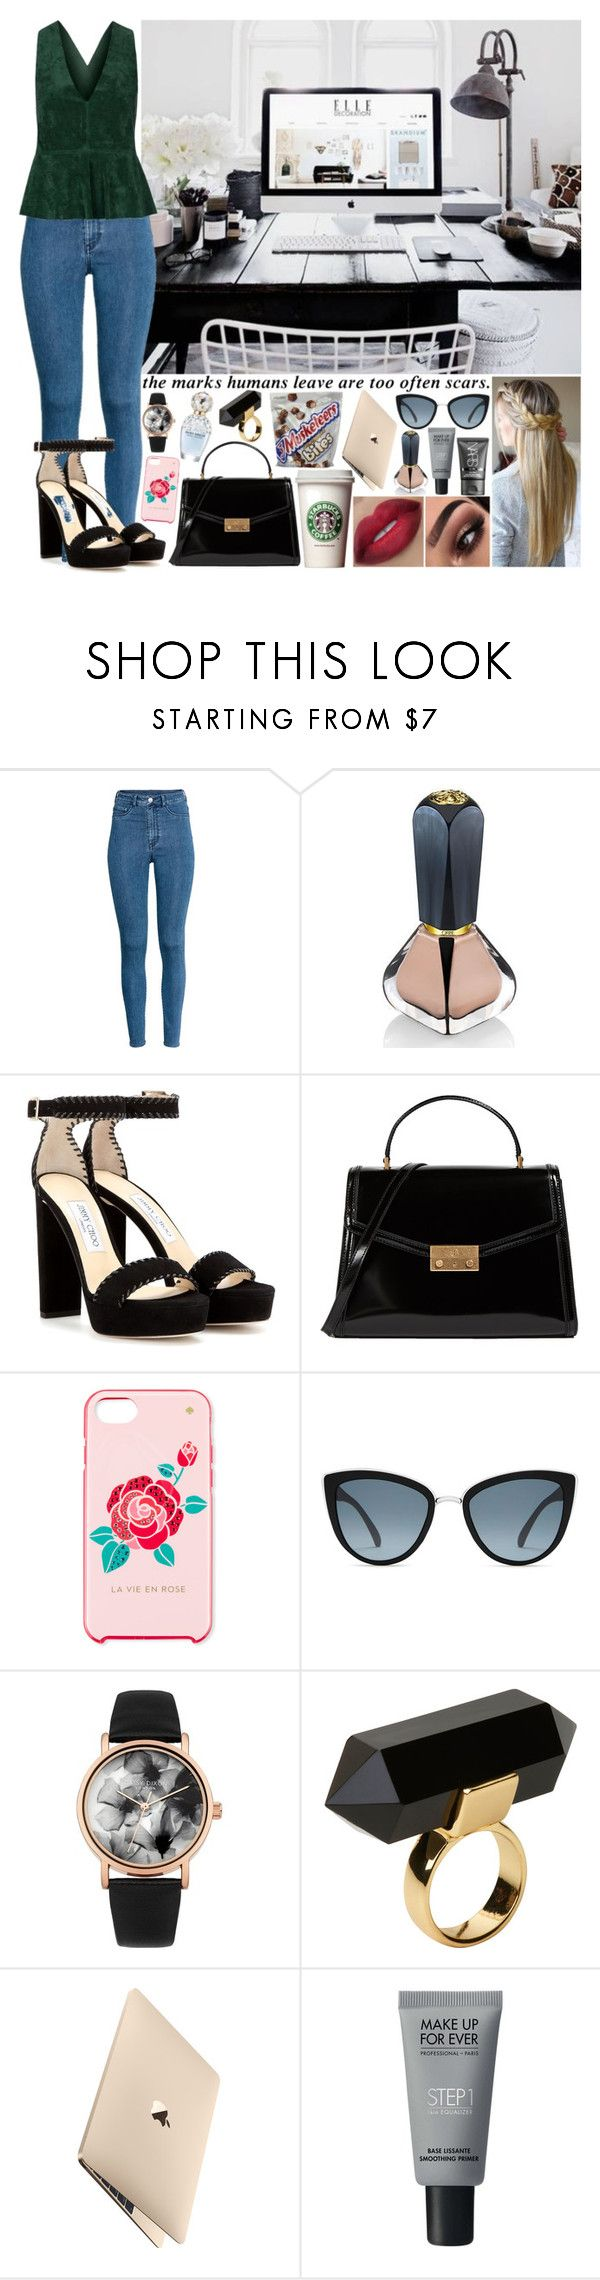 """Sin título #1379"" by gisella-jb-pintos ❤ liked on Polyvore featuring H&M, Oribe, Jimmy Choo, Tory Burch, Kate Spade, Topshop, Lipsy, GET LOST, Marc Jacobs and Monki"